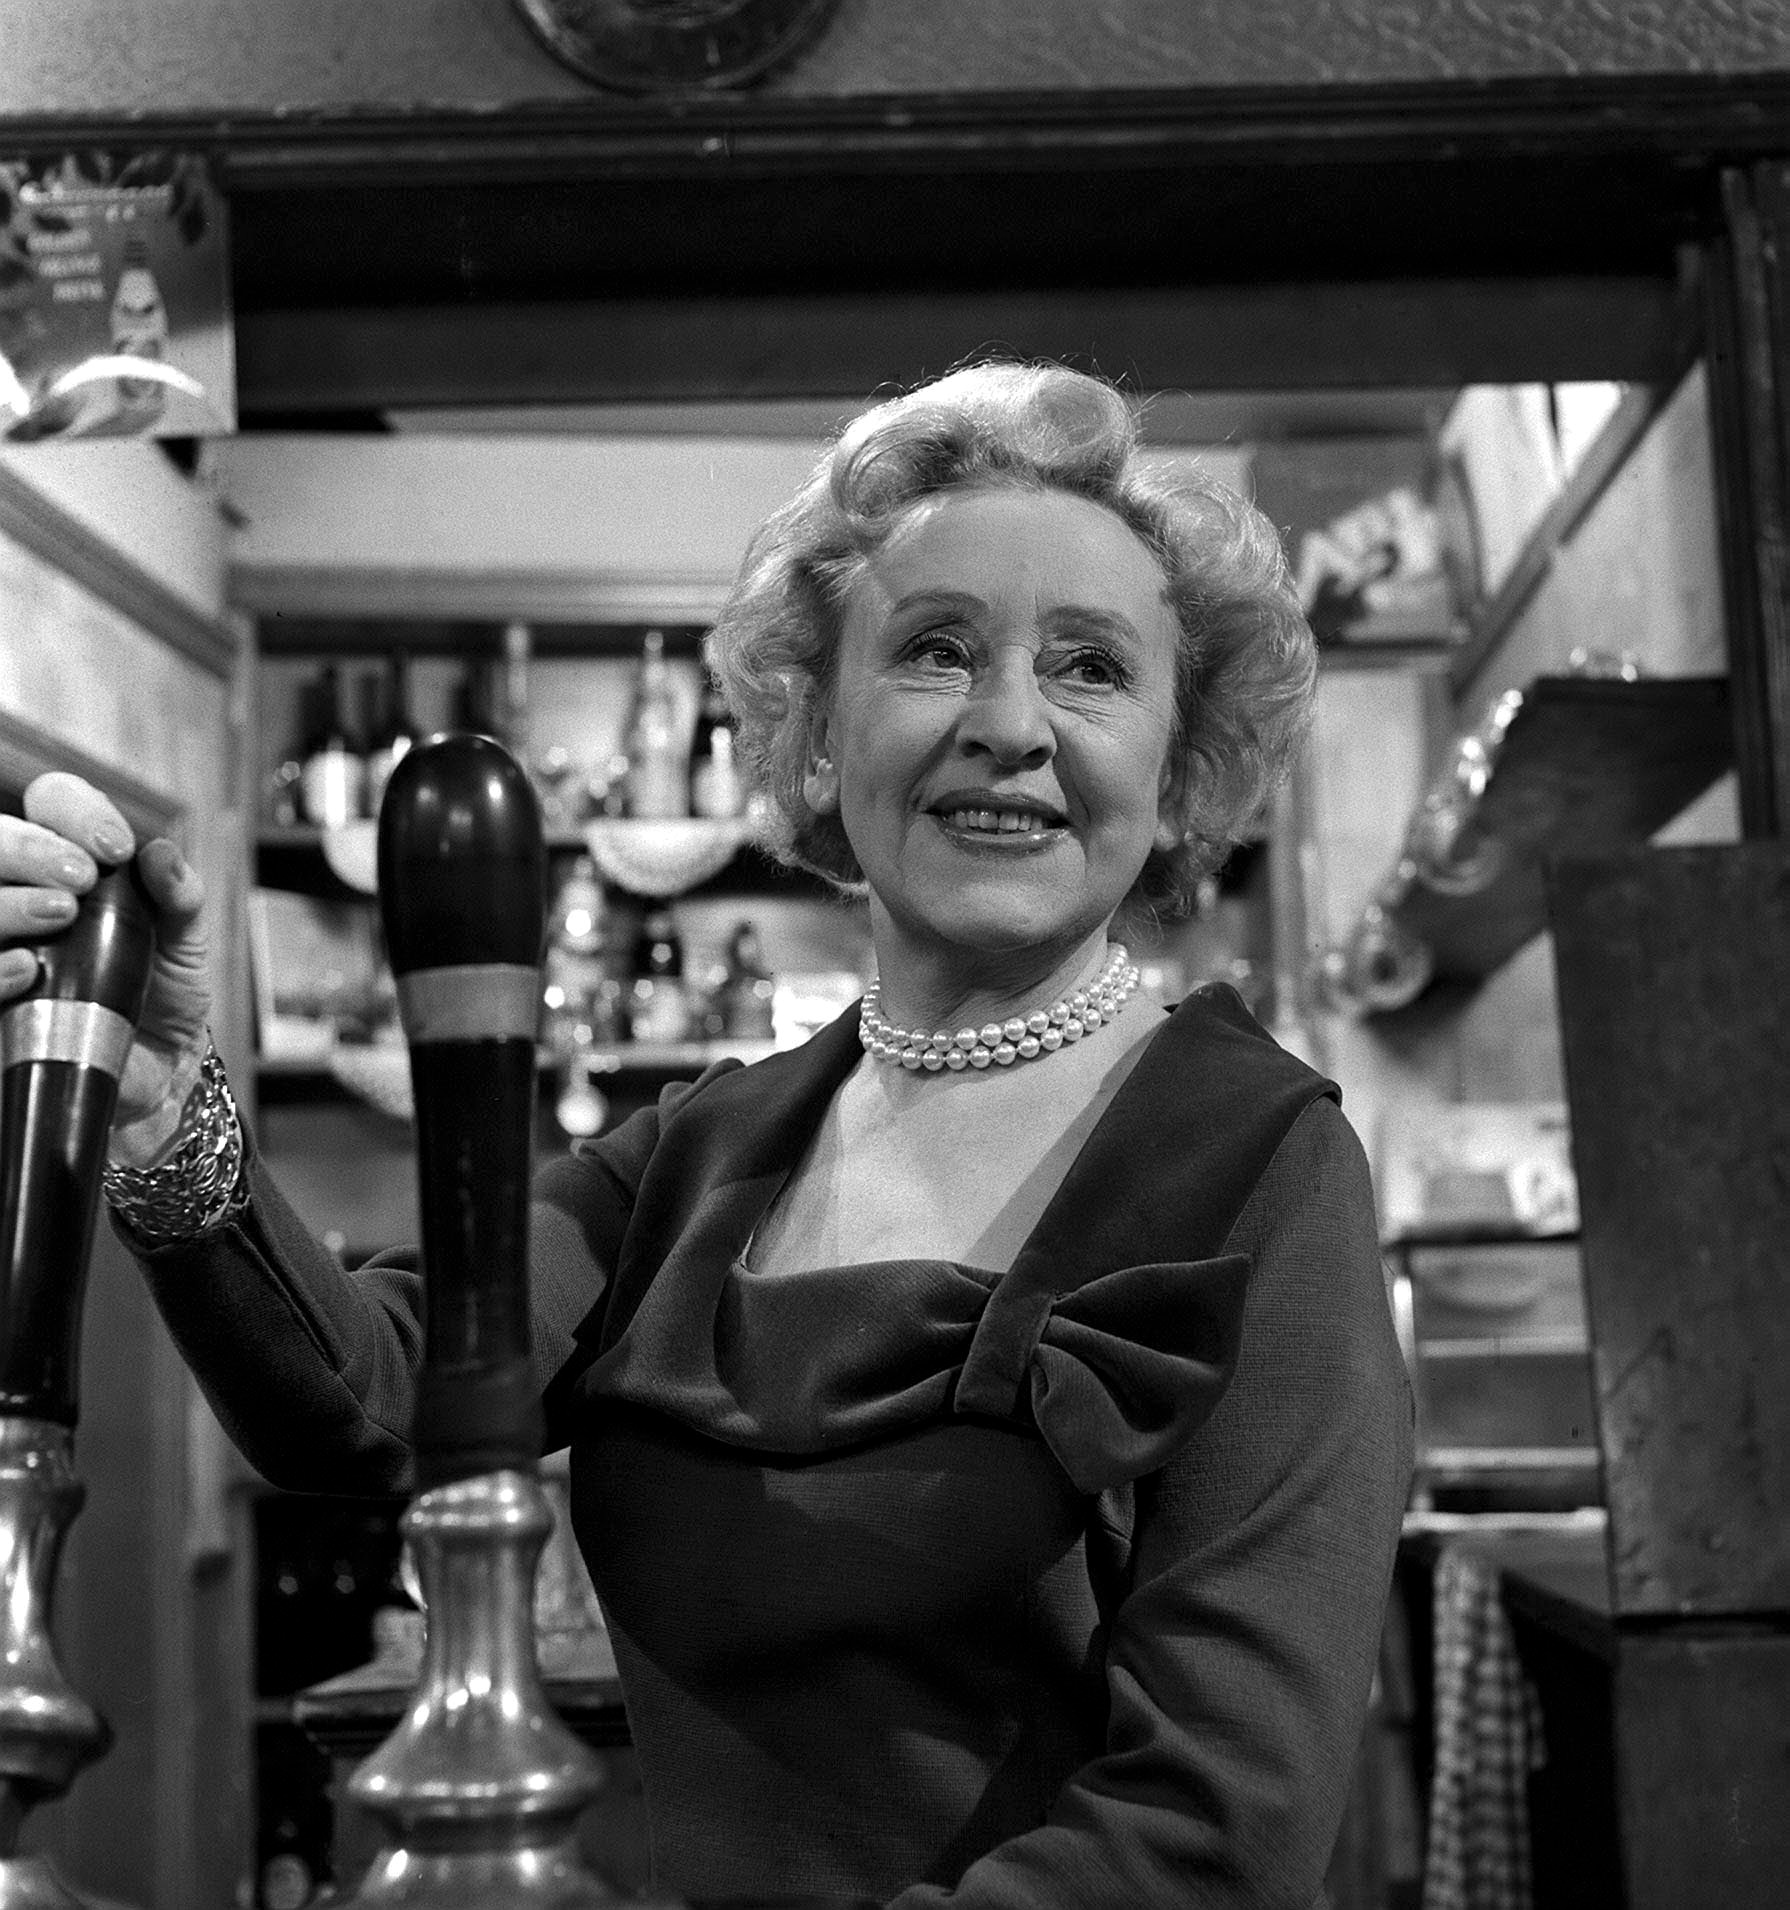 Editorial use only. Exclusive - Premium Rates Apply. Call your Account Manager for pricing. Mandatory Credit: Photo by ITV/REX/Shutterstock (670025md) 'Coronation Street' TV - 1966 - Annie Walker [Doris Speed] ITV ARCHIVE